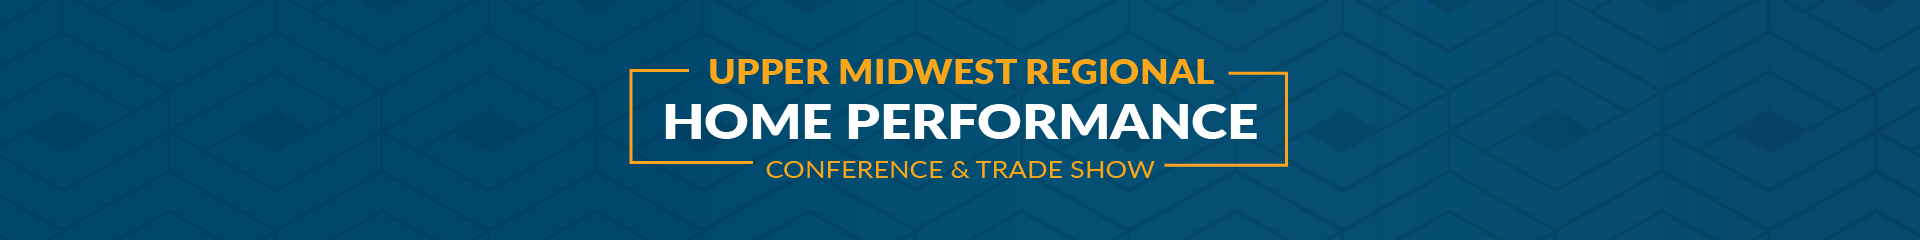 2020 Upper Midwest Regional Home Performance Conference & Trade Show Event Banner